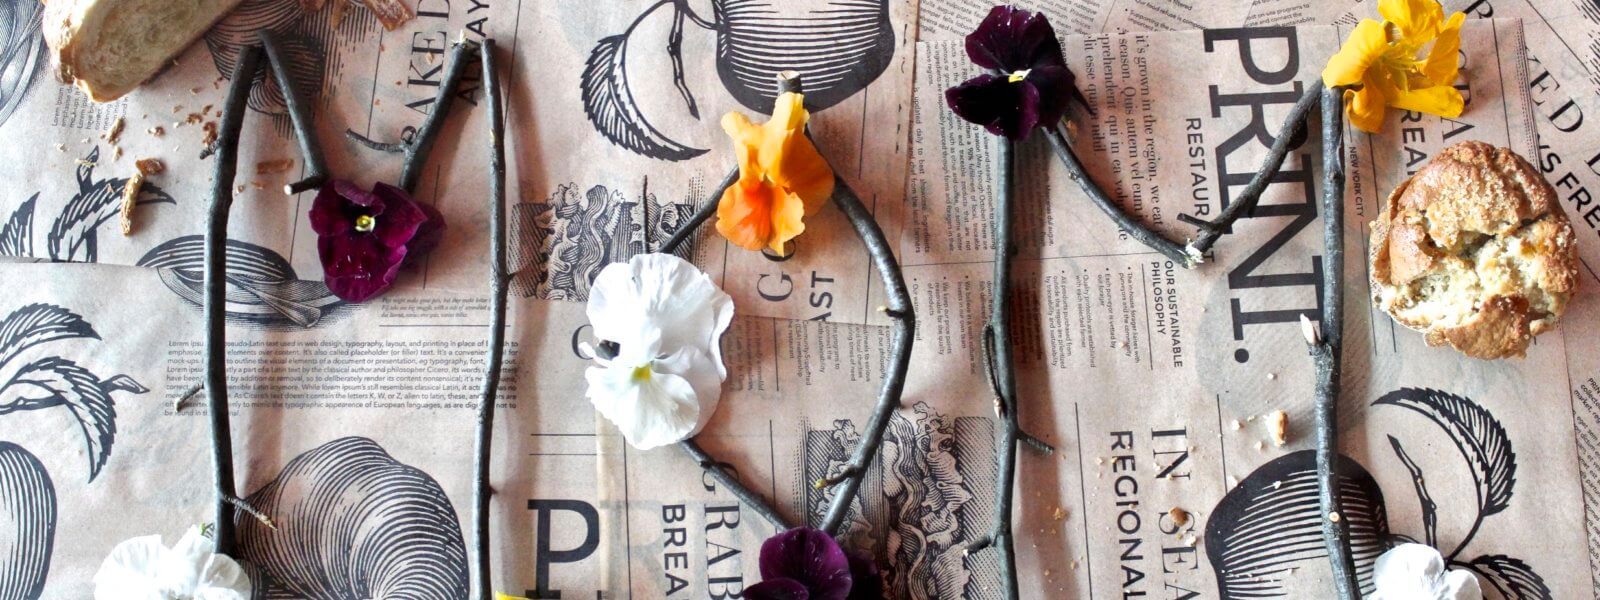 """Mom"" spelled out with twigs and flowers on PRINT paper."